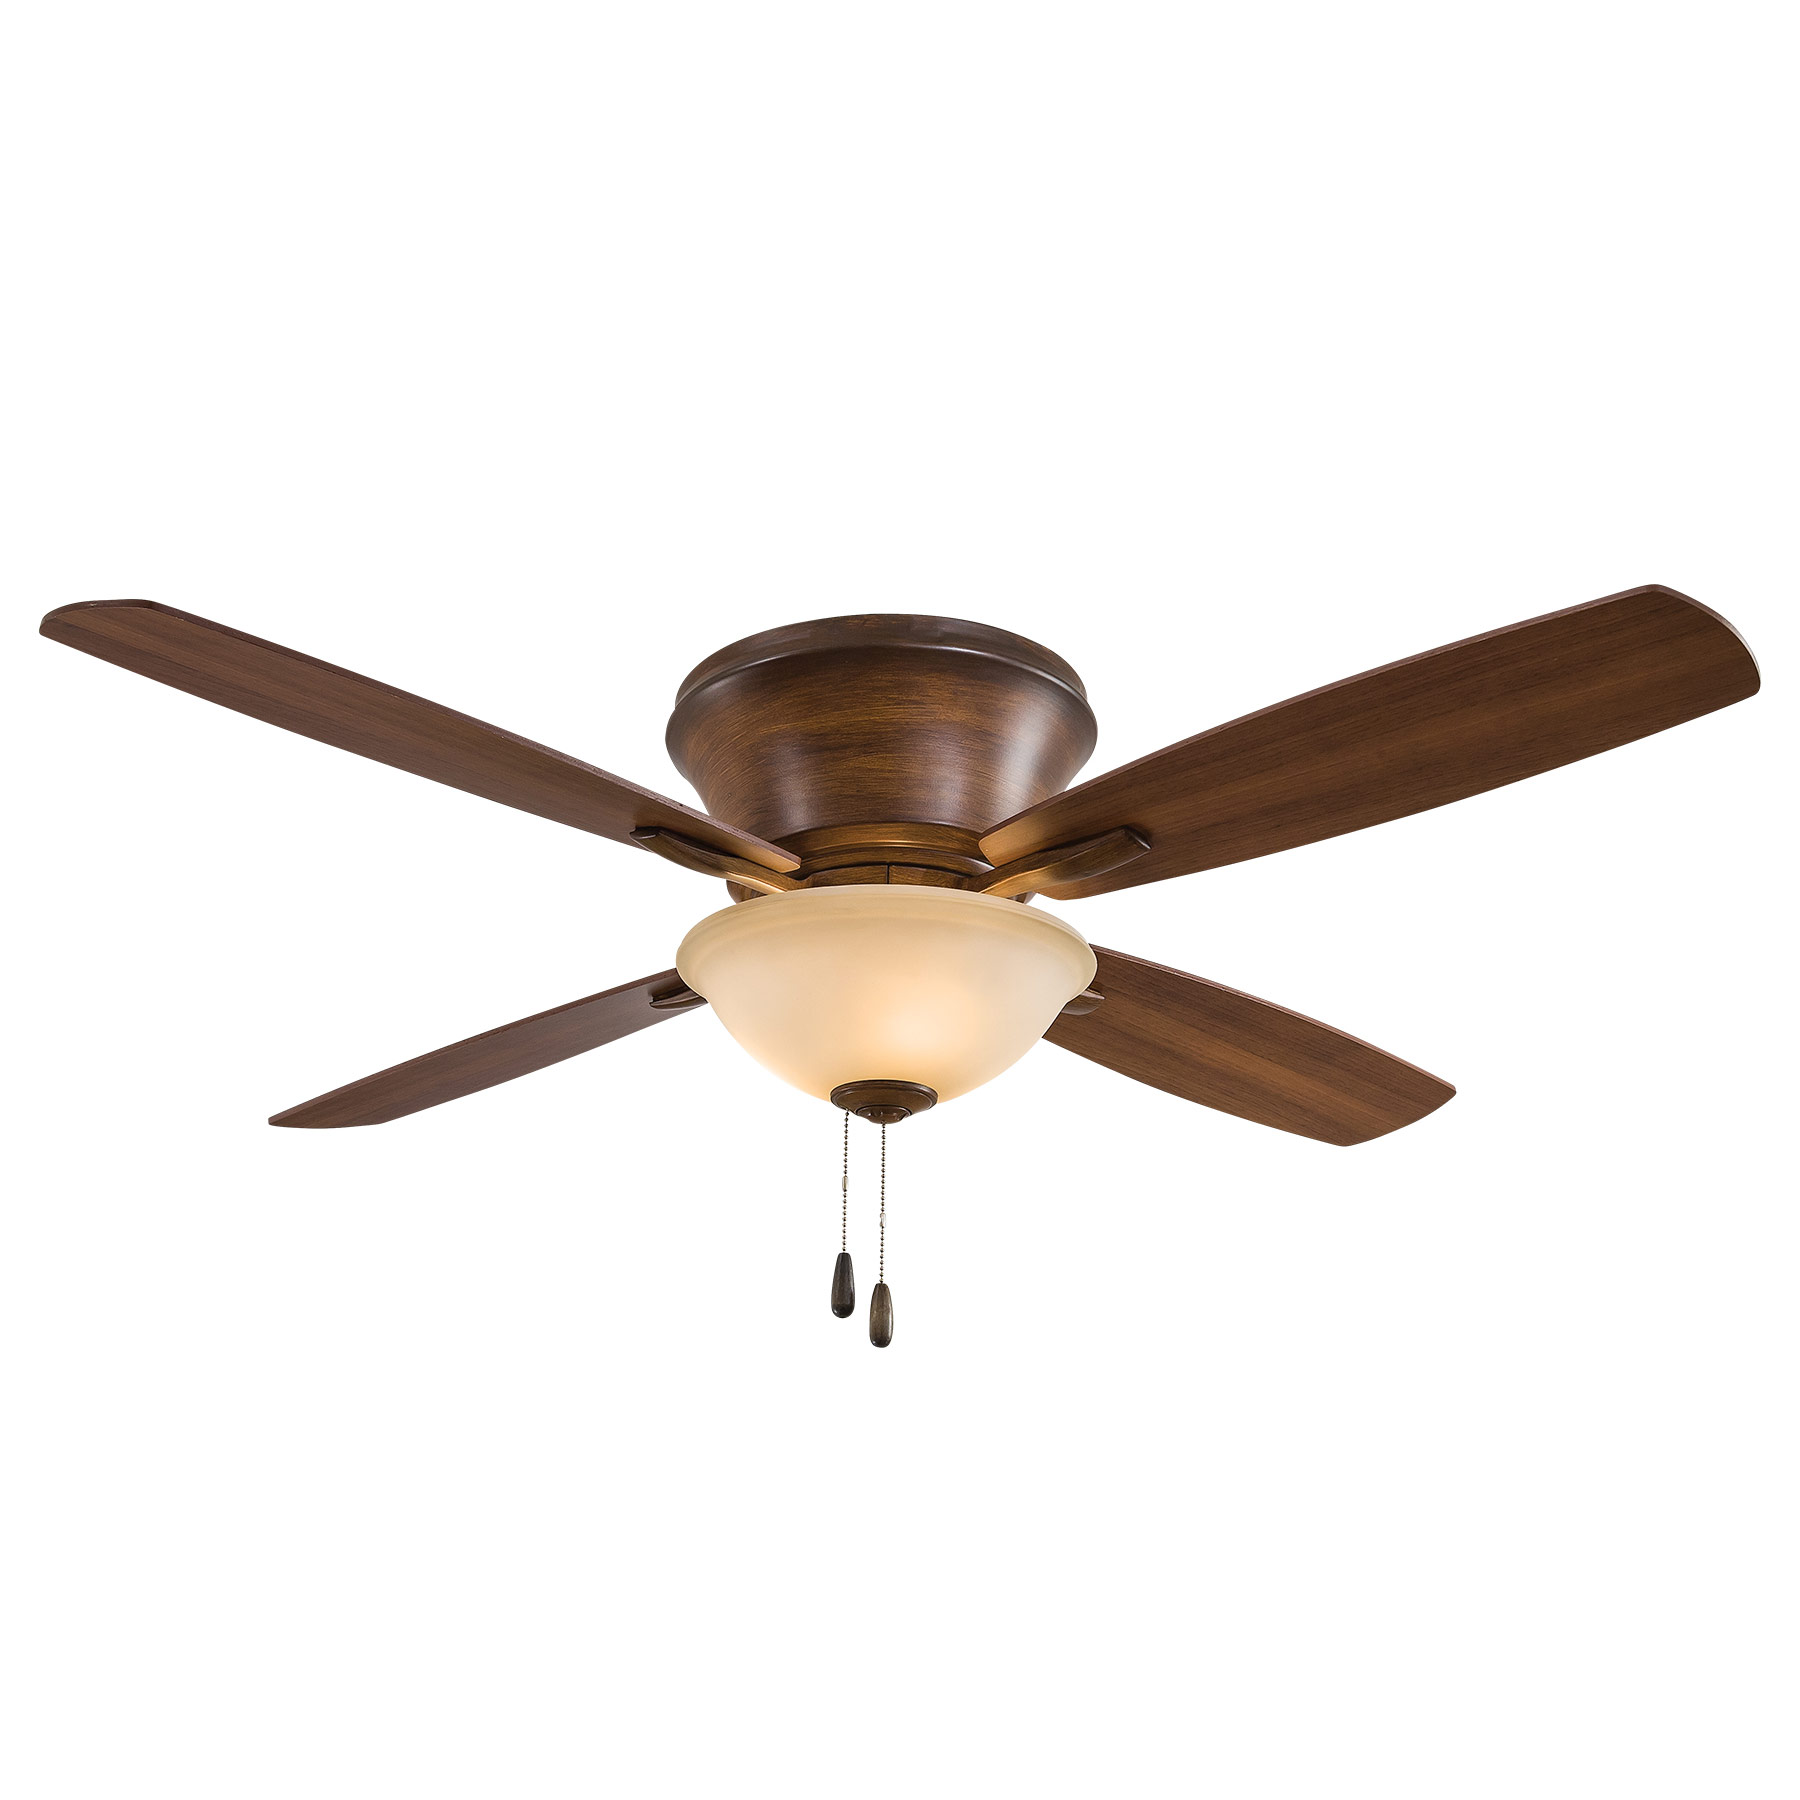 Ceiling Fans Mount: Mojo II Flush Mount Ceiling Fan By Minka Aire